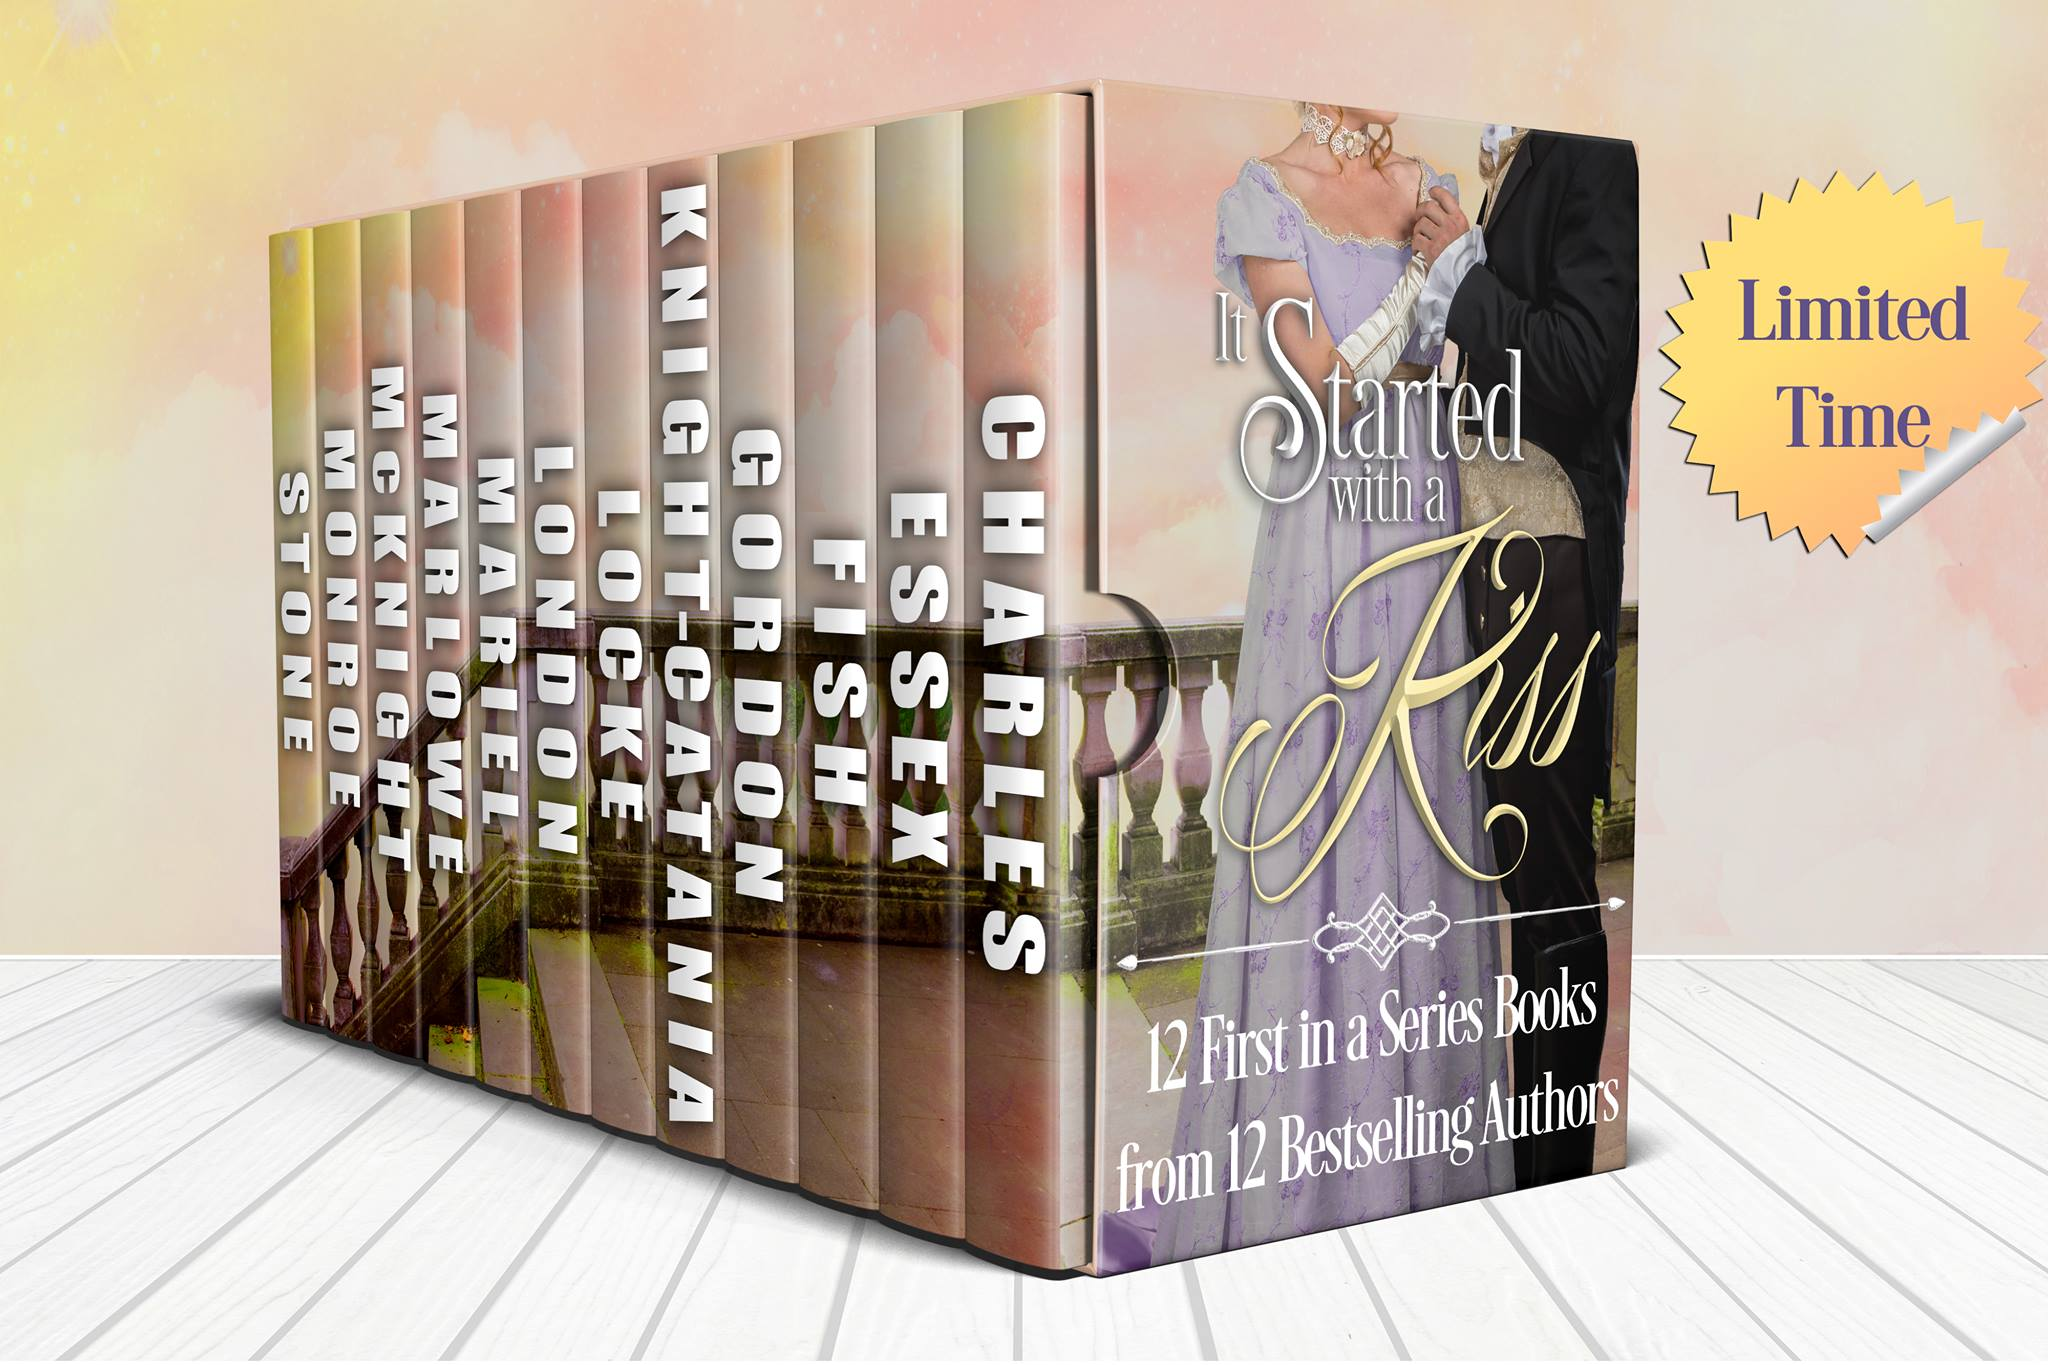 IT STARTED WITH A KISS – Limited Time Box Set!